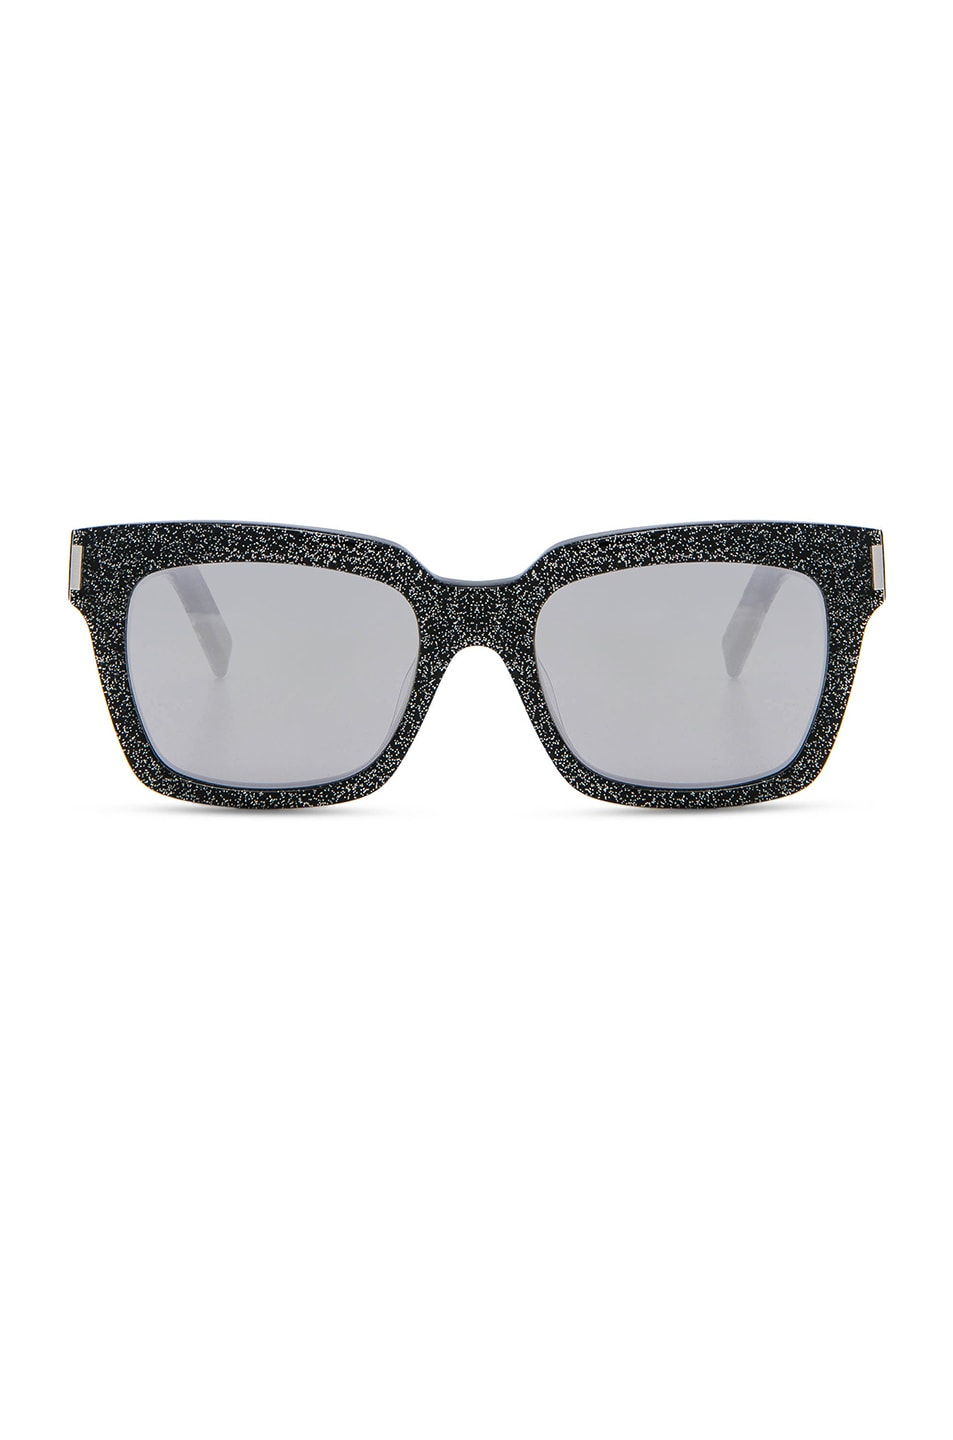 Image 1 of Saint Laurent Bold 1 Sunglasses in Glitter Multicolor, Silver & White